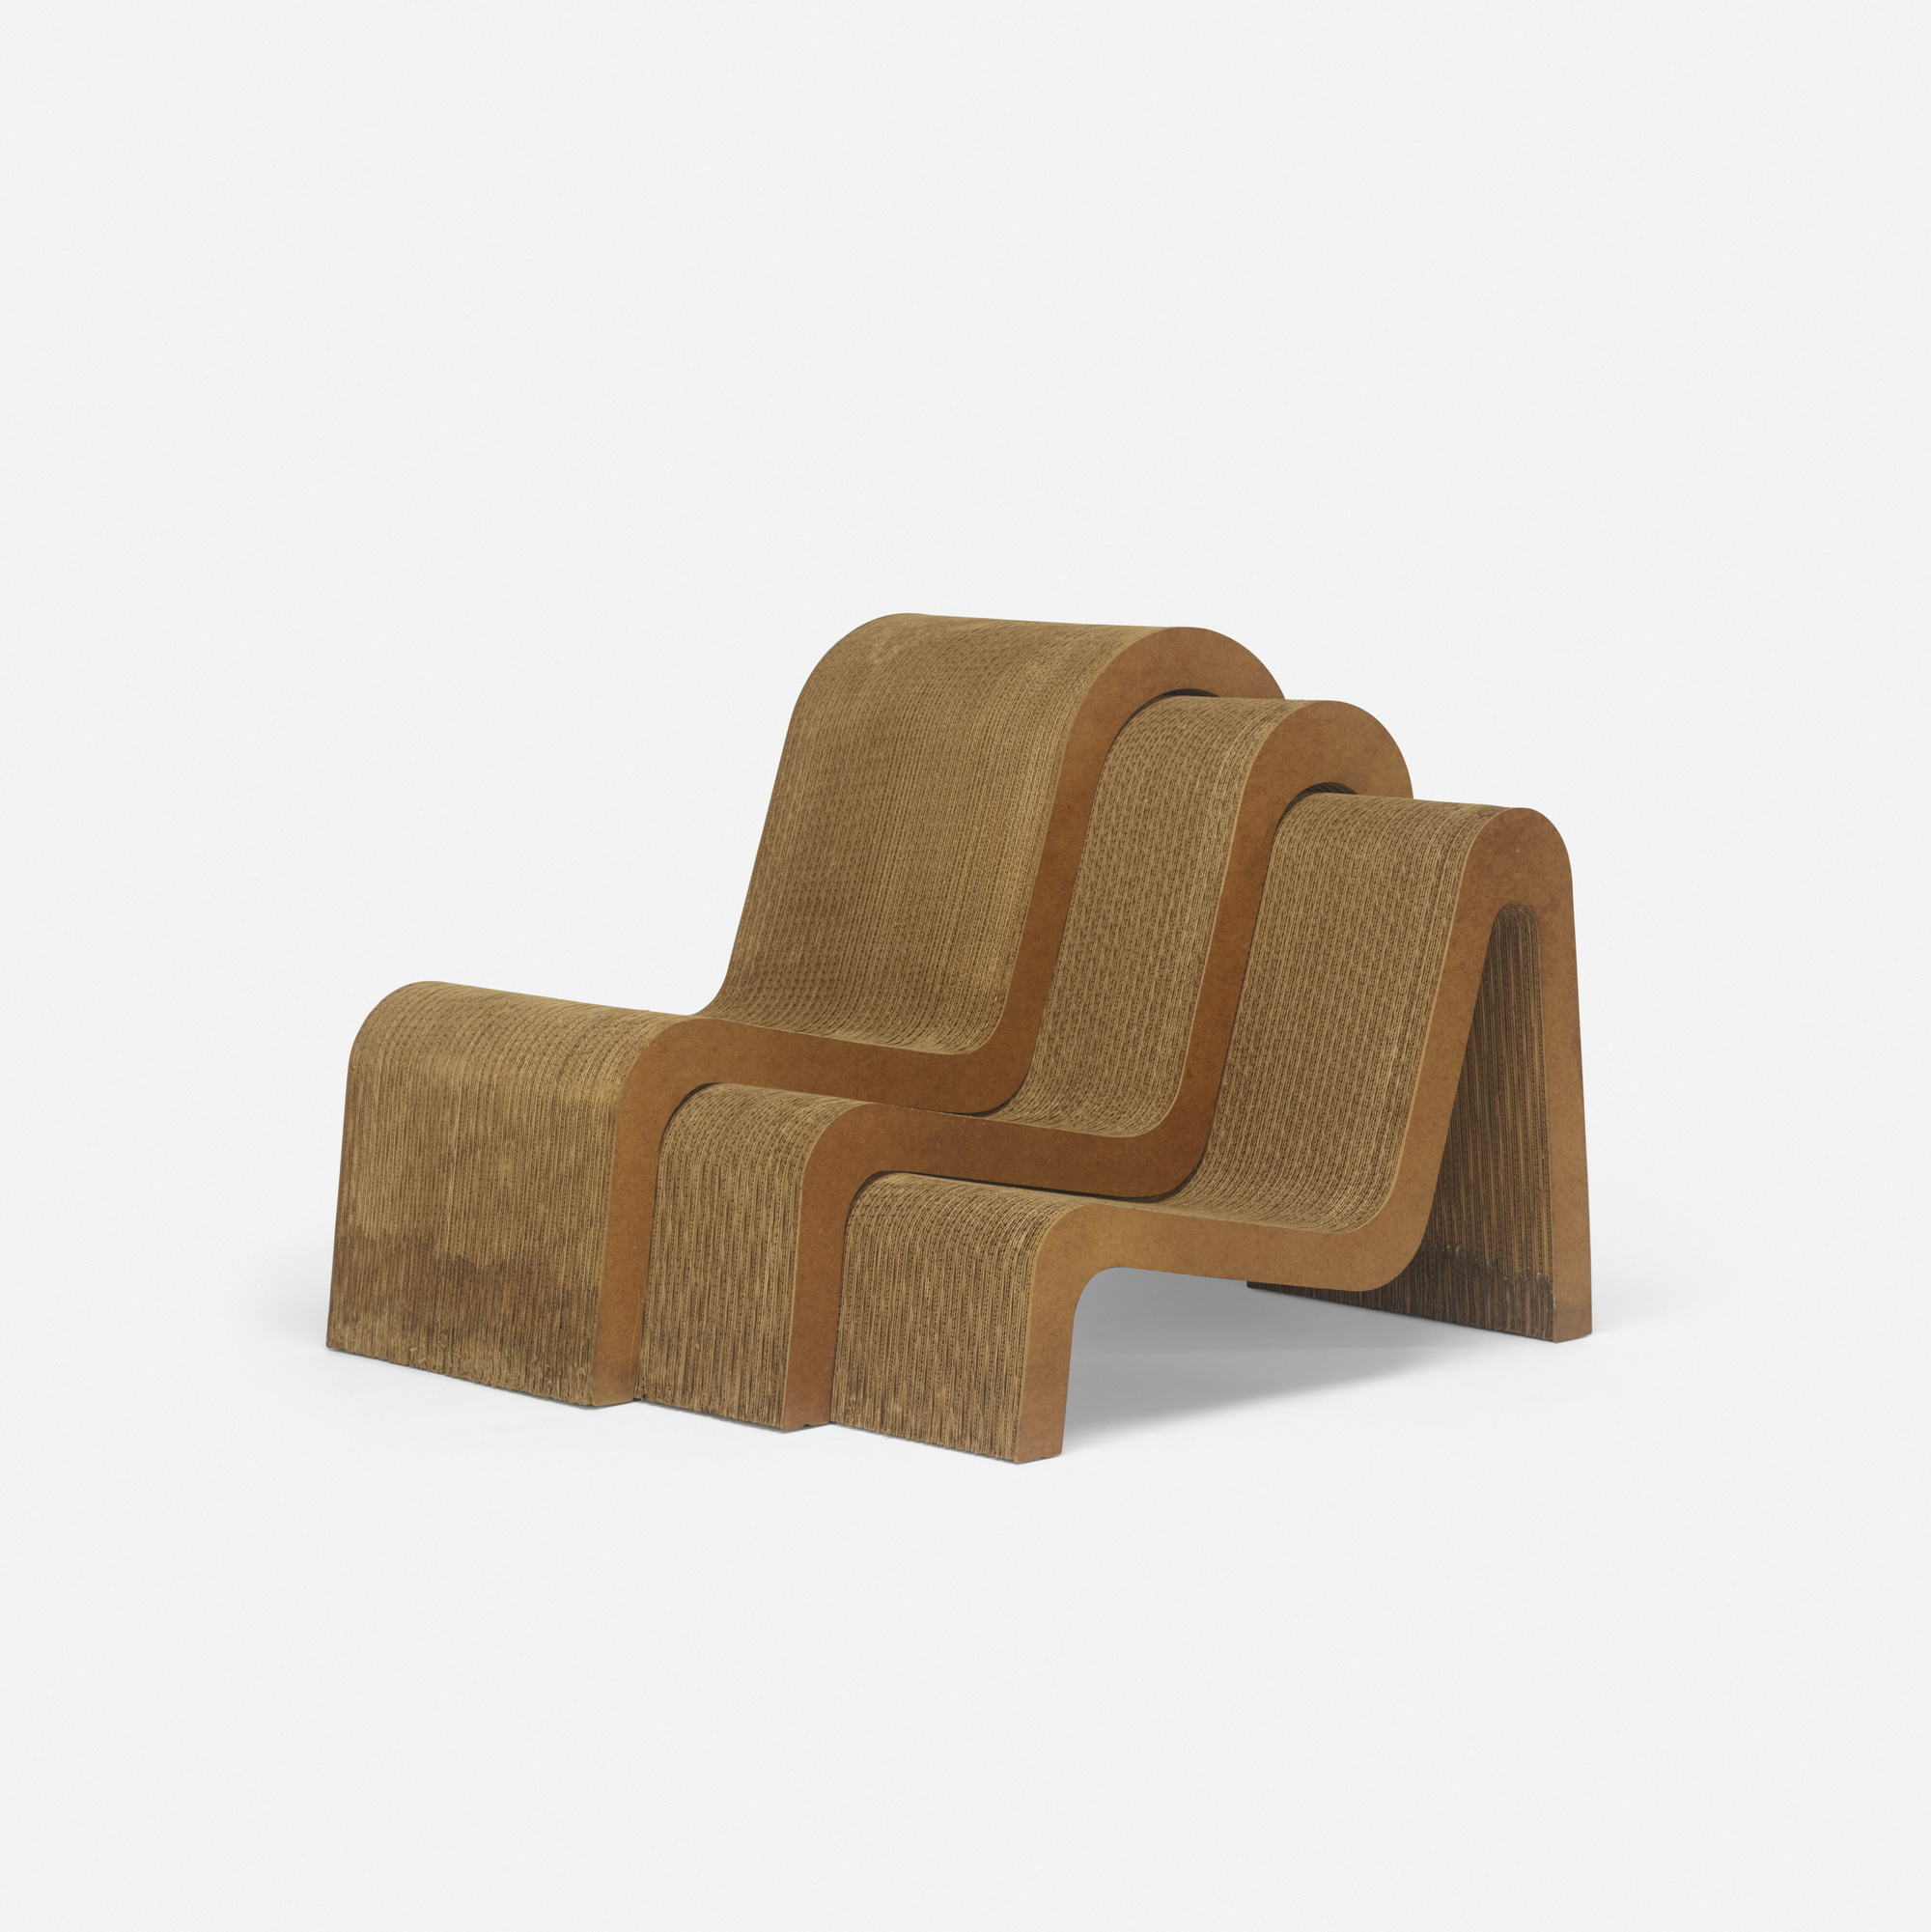 421: Frank Gehry / Nesting Chairs, Set Of Three (1 Of 3)